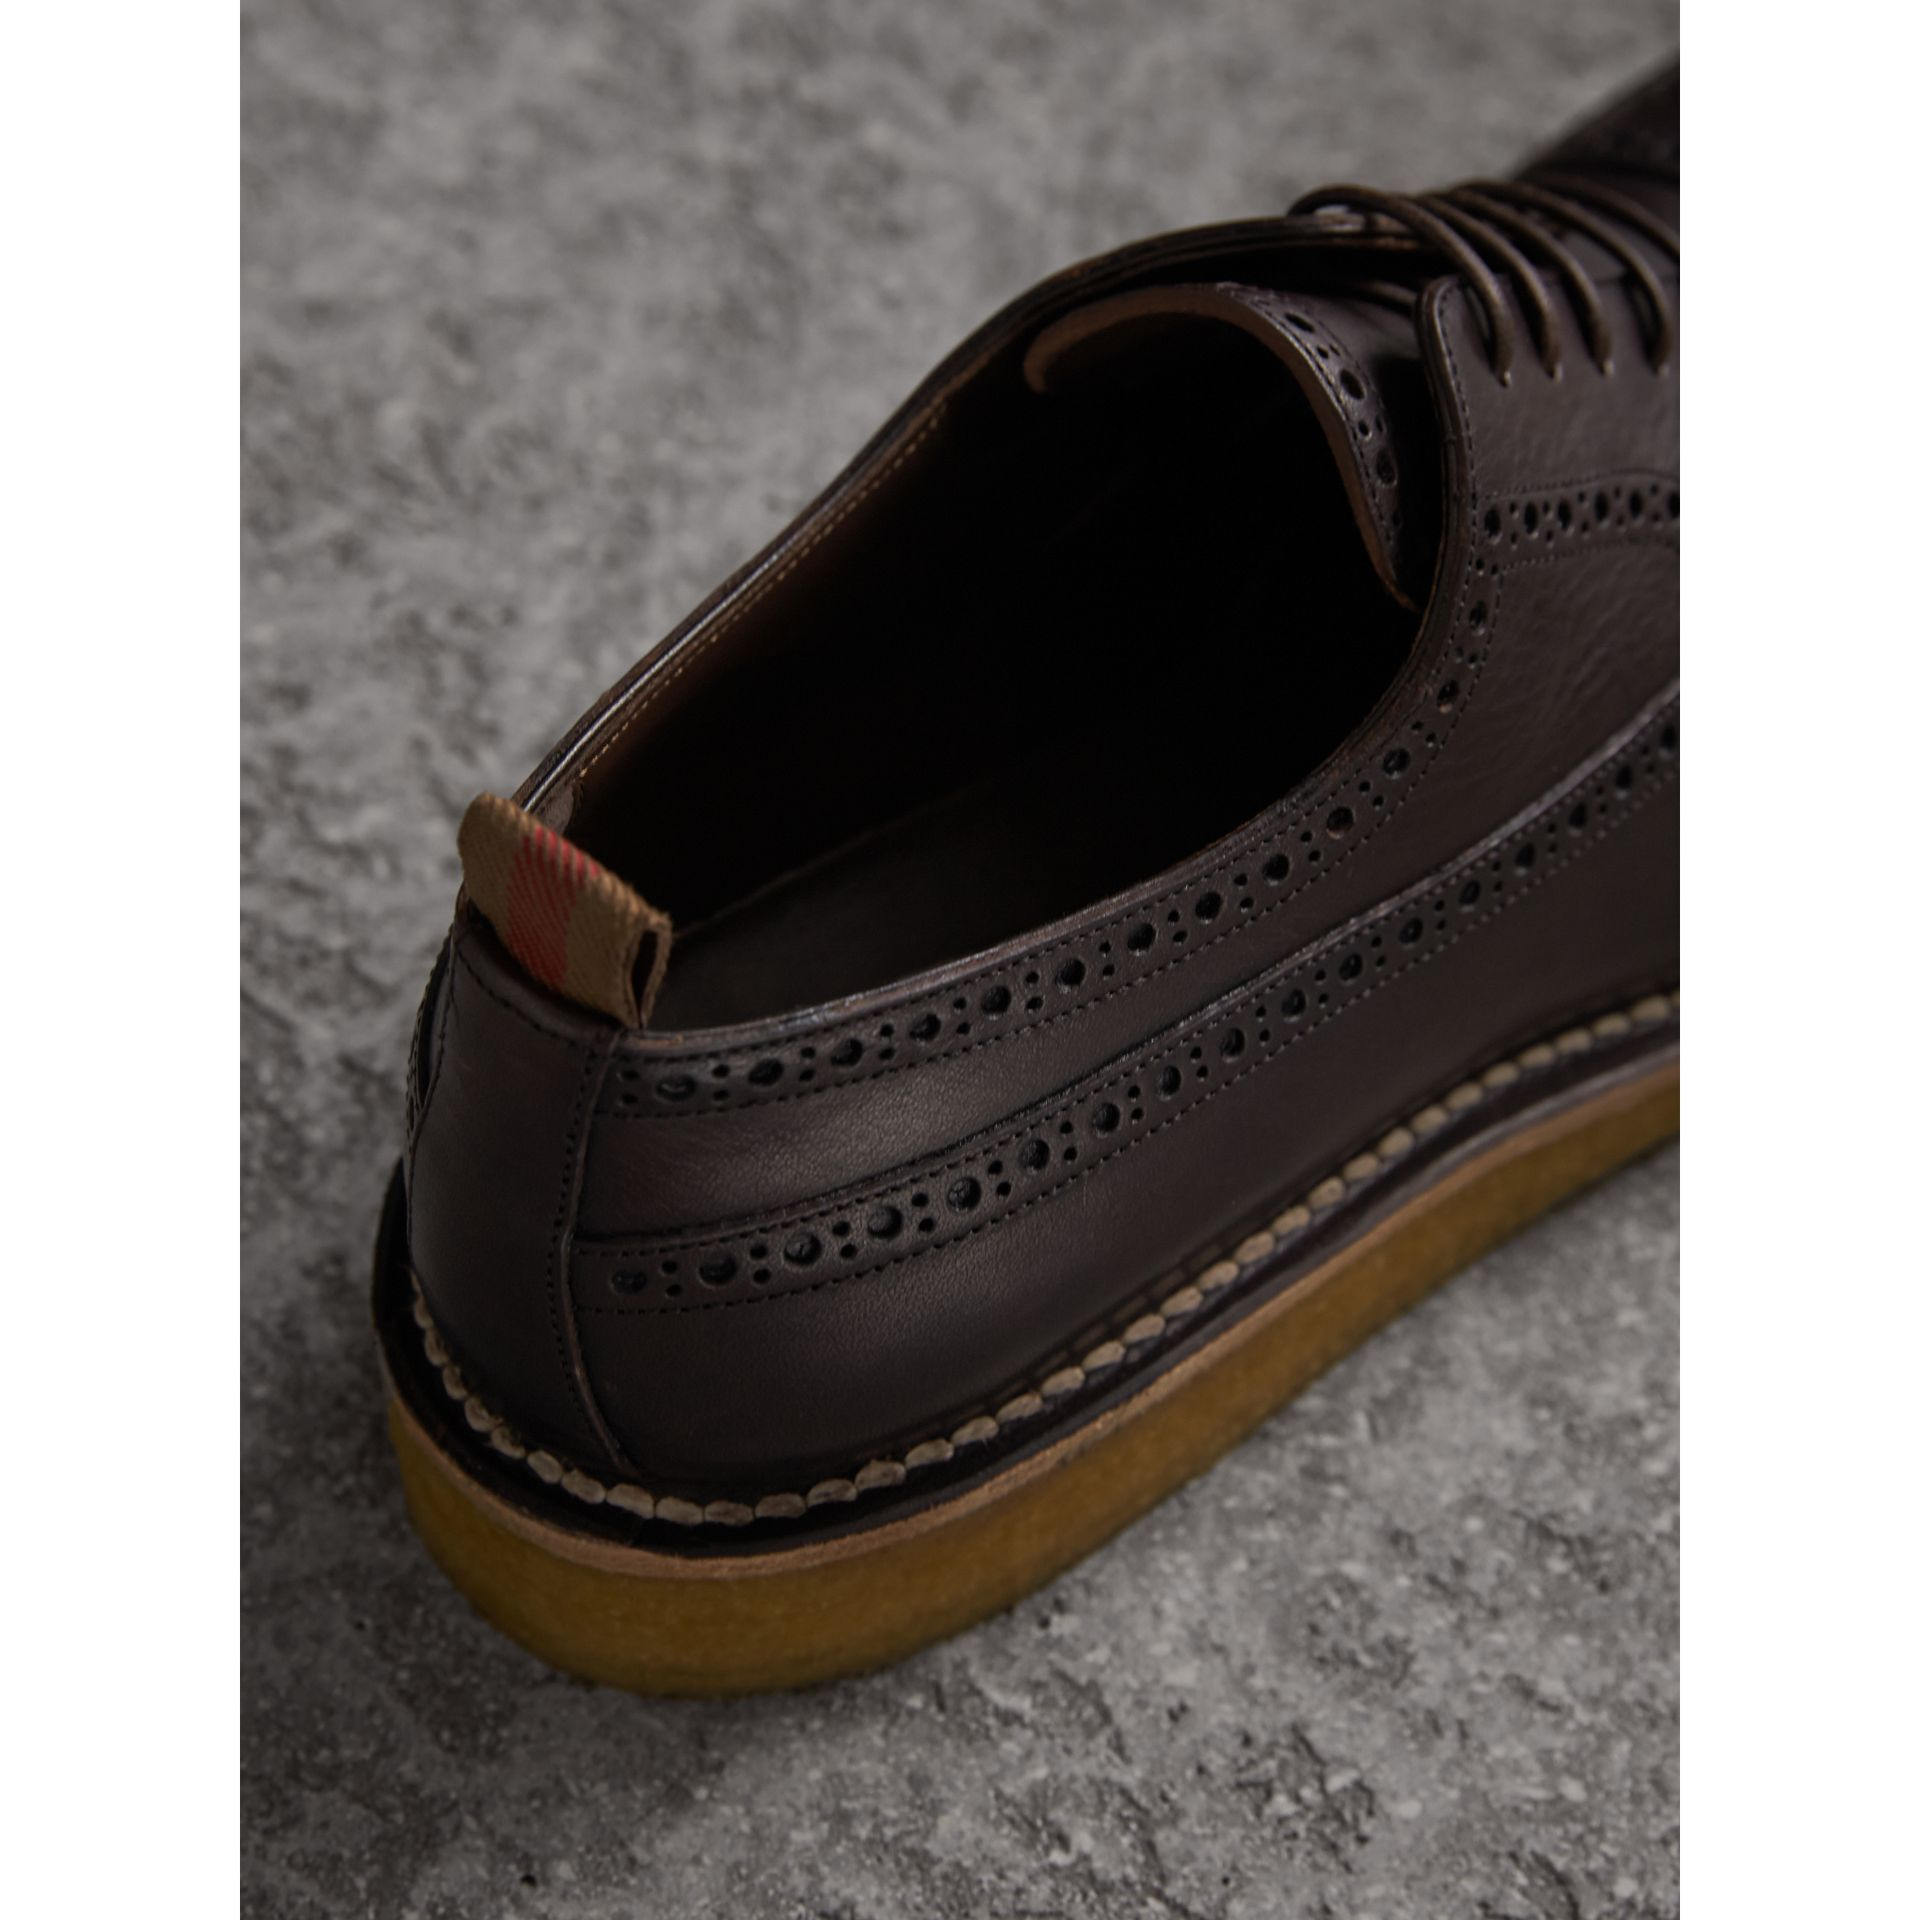 Raised Toe-cap Leather Brogues in Ebony - Men | Burberry Singapore - gallery image 2